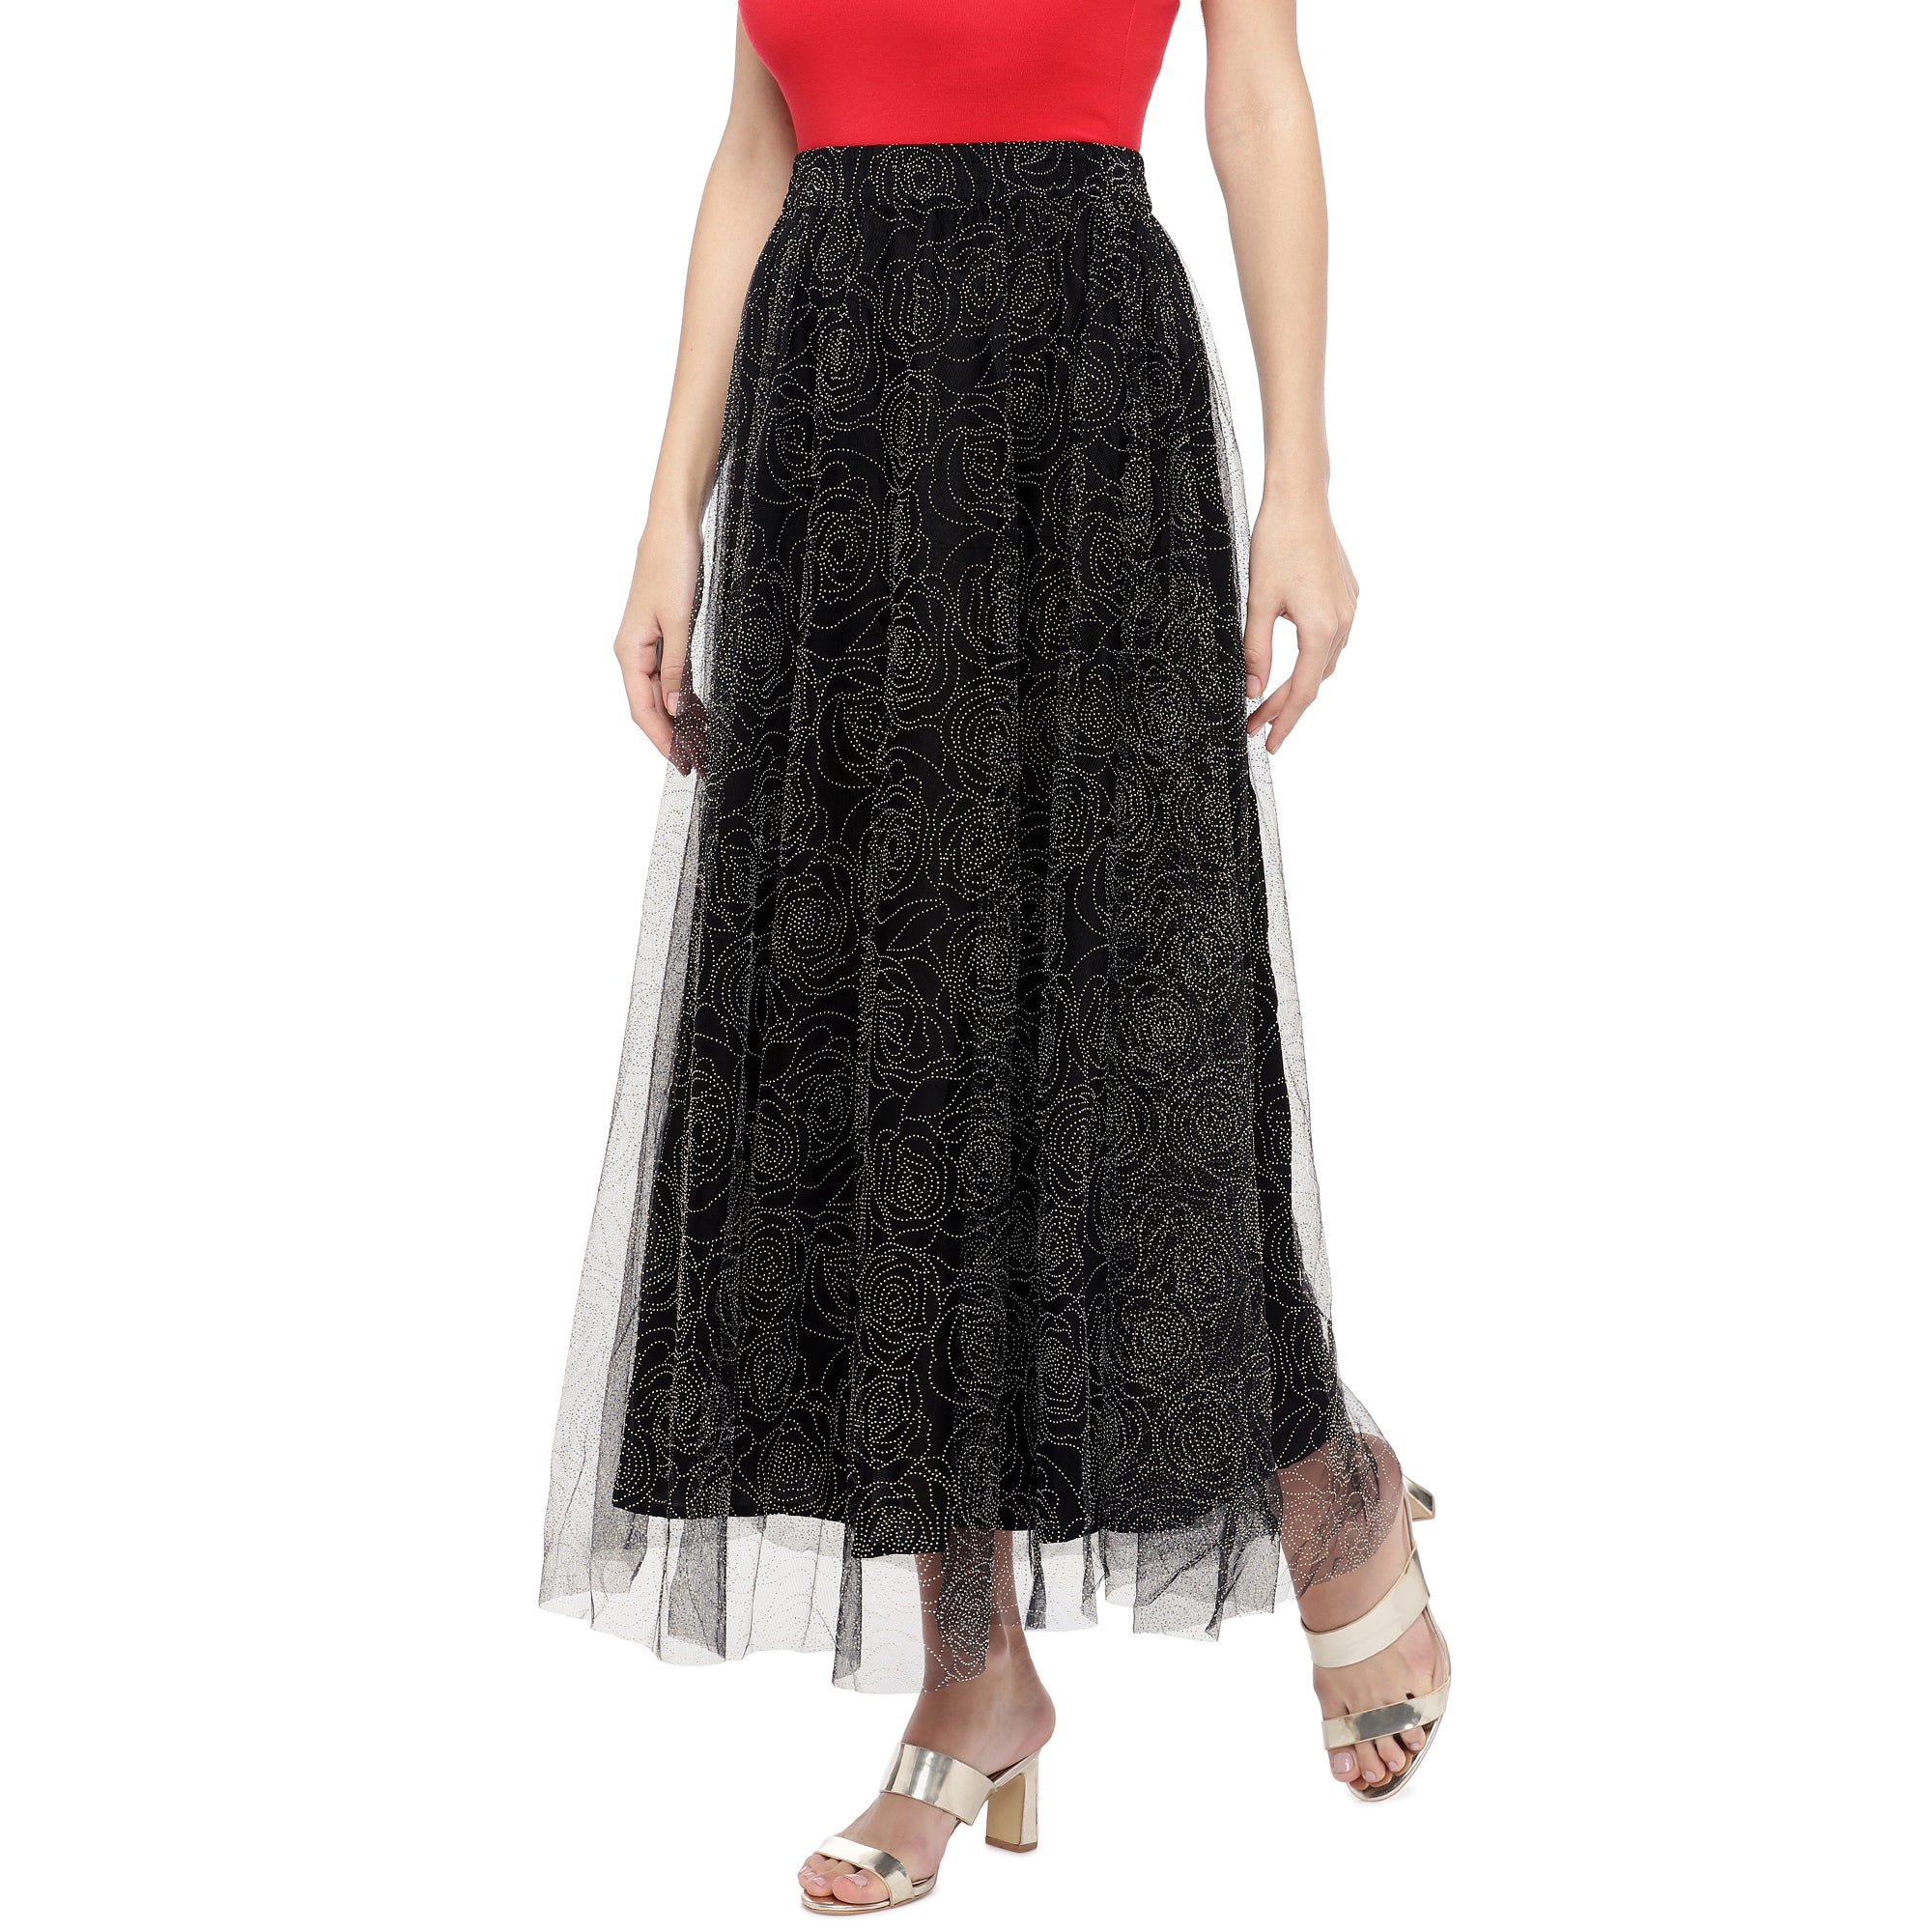 Black Embellished Flared Maxi Ethnic Skirt-2